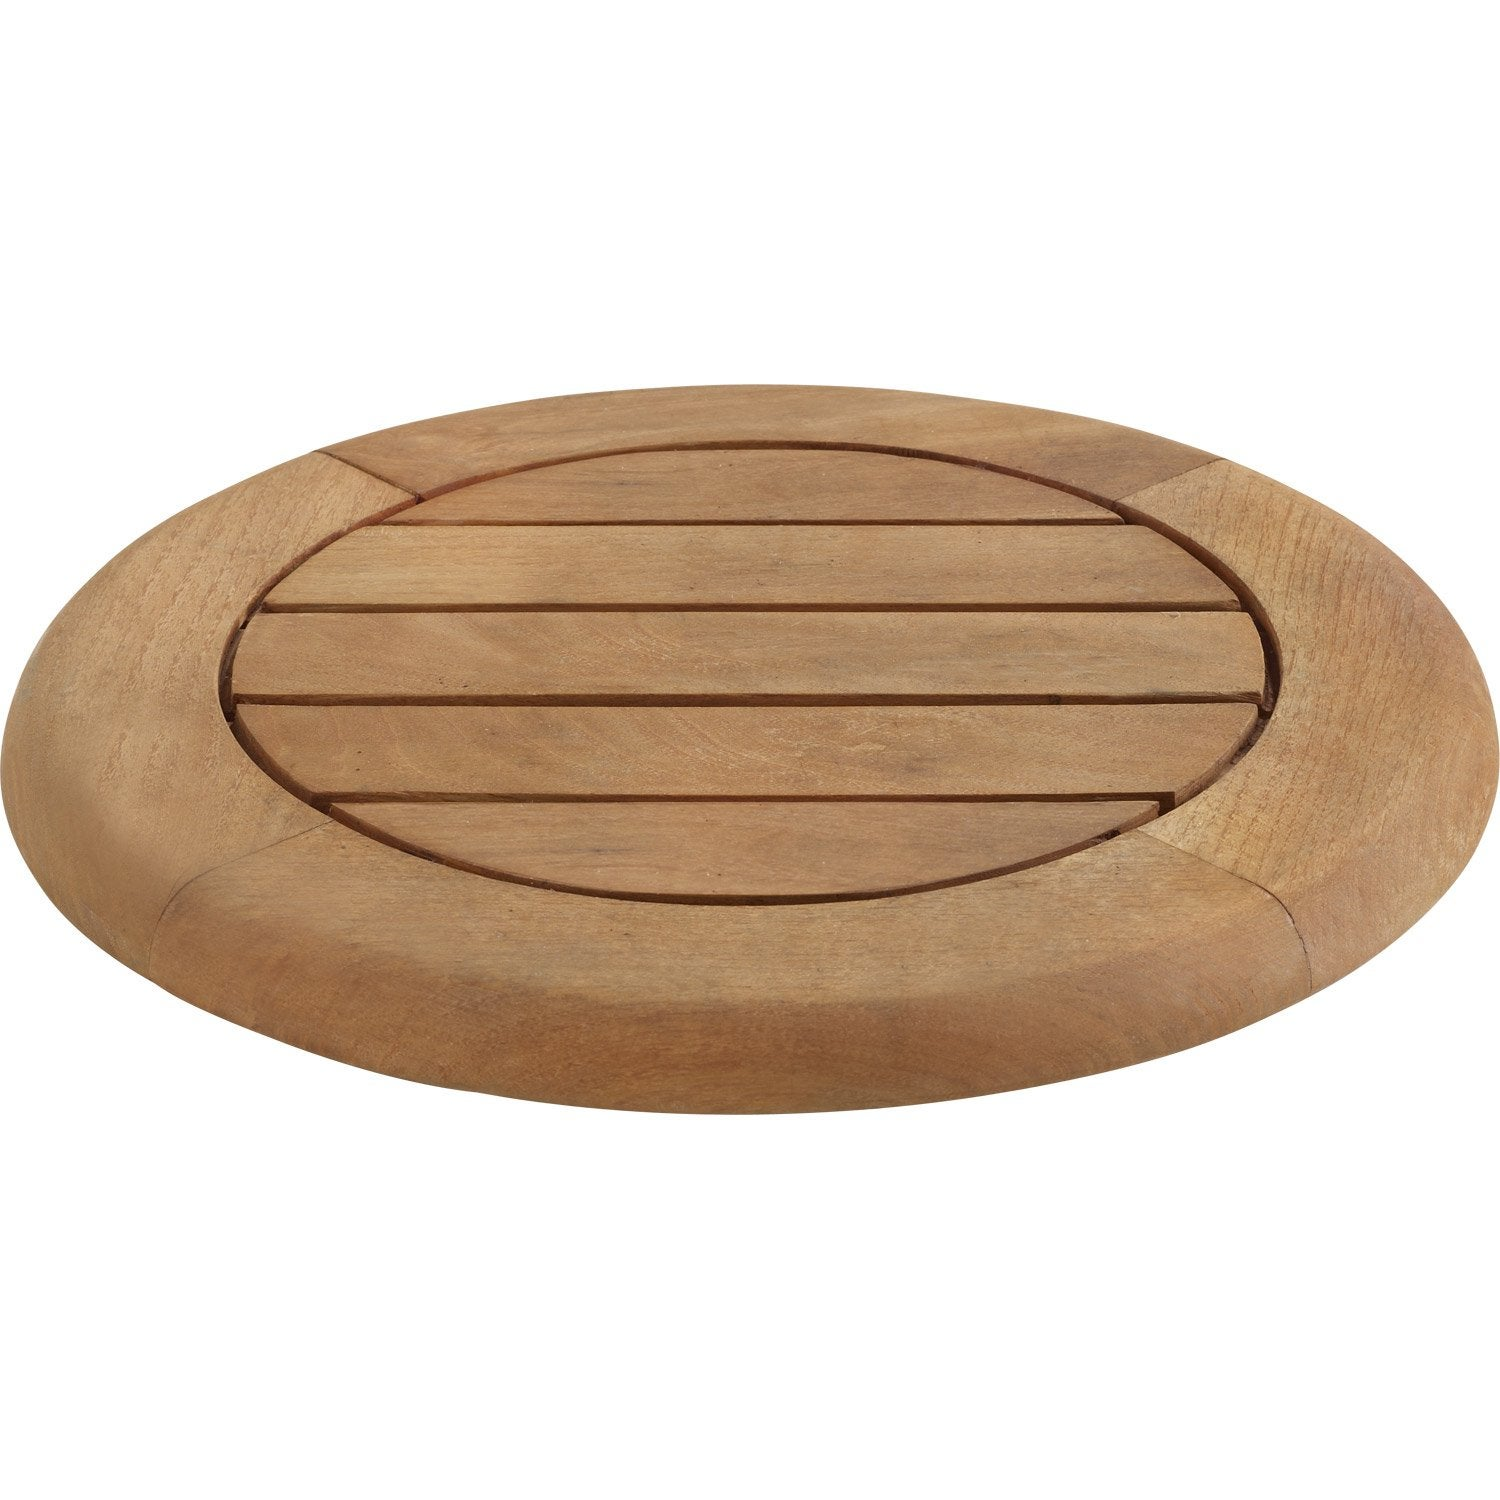 Plateau de table rond robin naterial leroy merlin for Plateau rond pour table